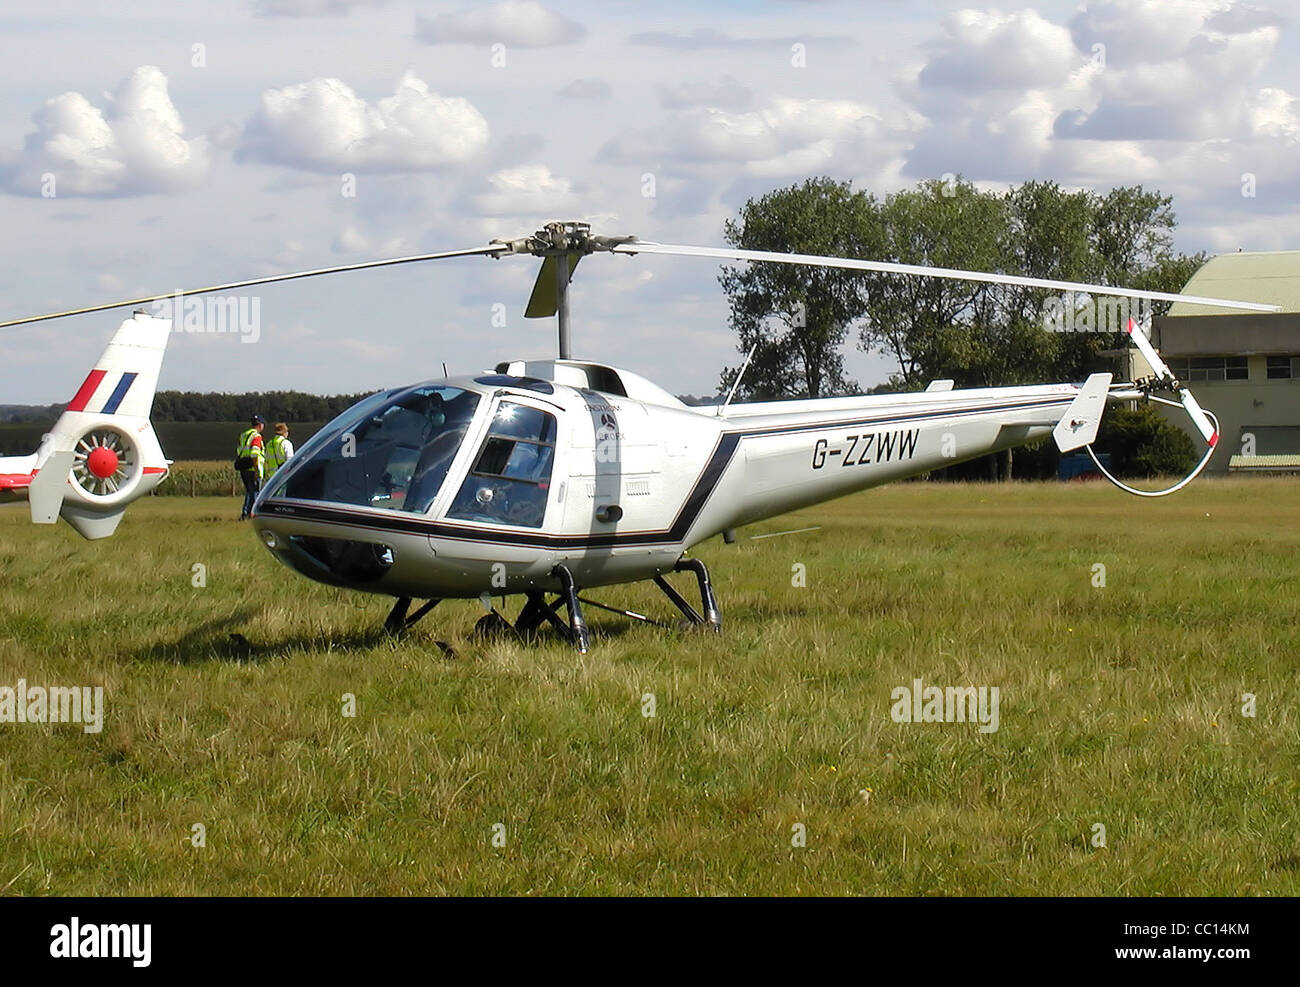 Enstrom 280FX Shark (G-ZZWW), built 1990, photographed at the Heli-Day, Kemble Airfield, England. - Stock Image